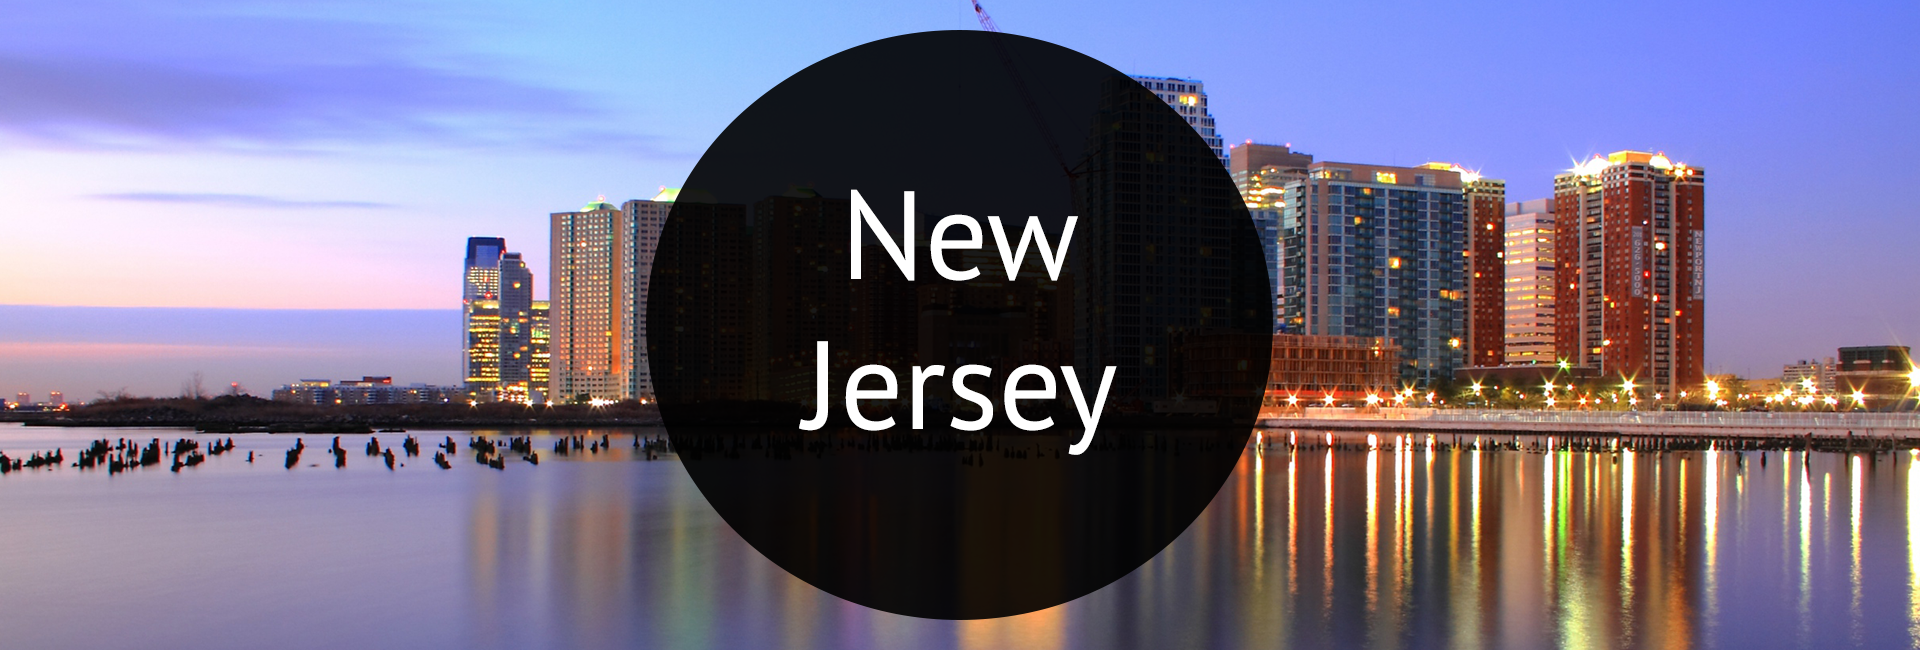 New Jersey Property Investment